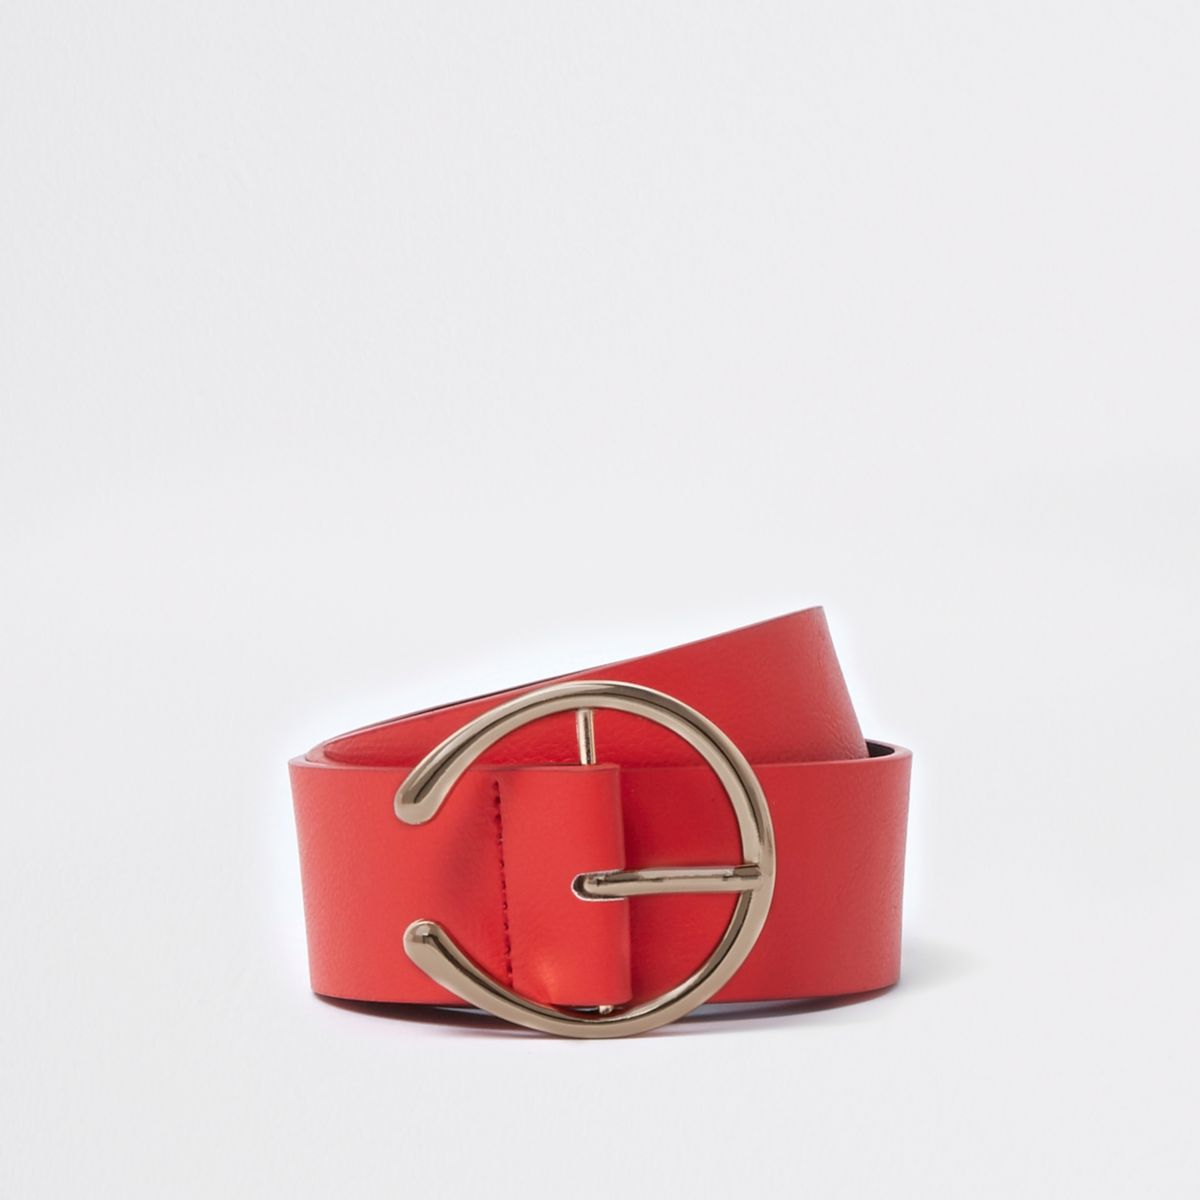 Red curved horseshoe buckle belt